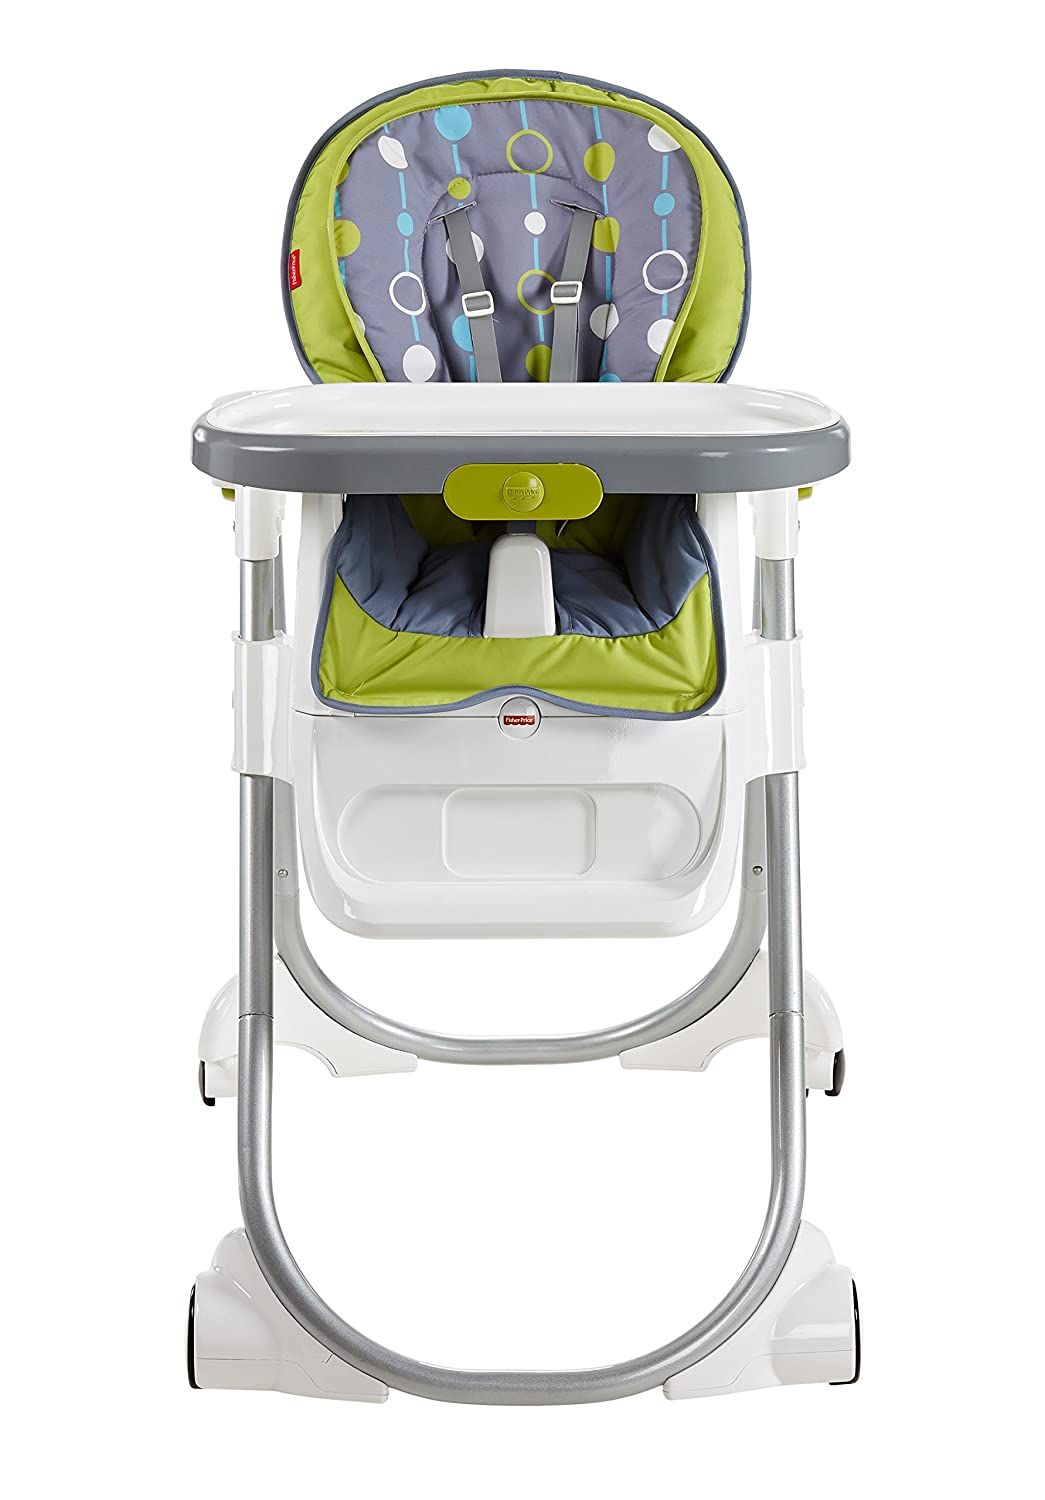 Chair fisher price high chair ez clean - Amazon Com Fisher Price 4 In 1 Total Clean High Chair Green Gray Baby